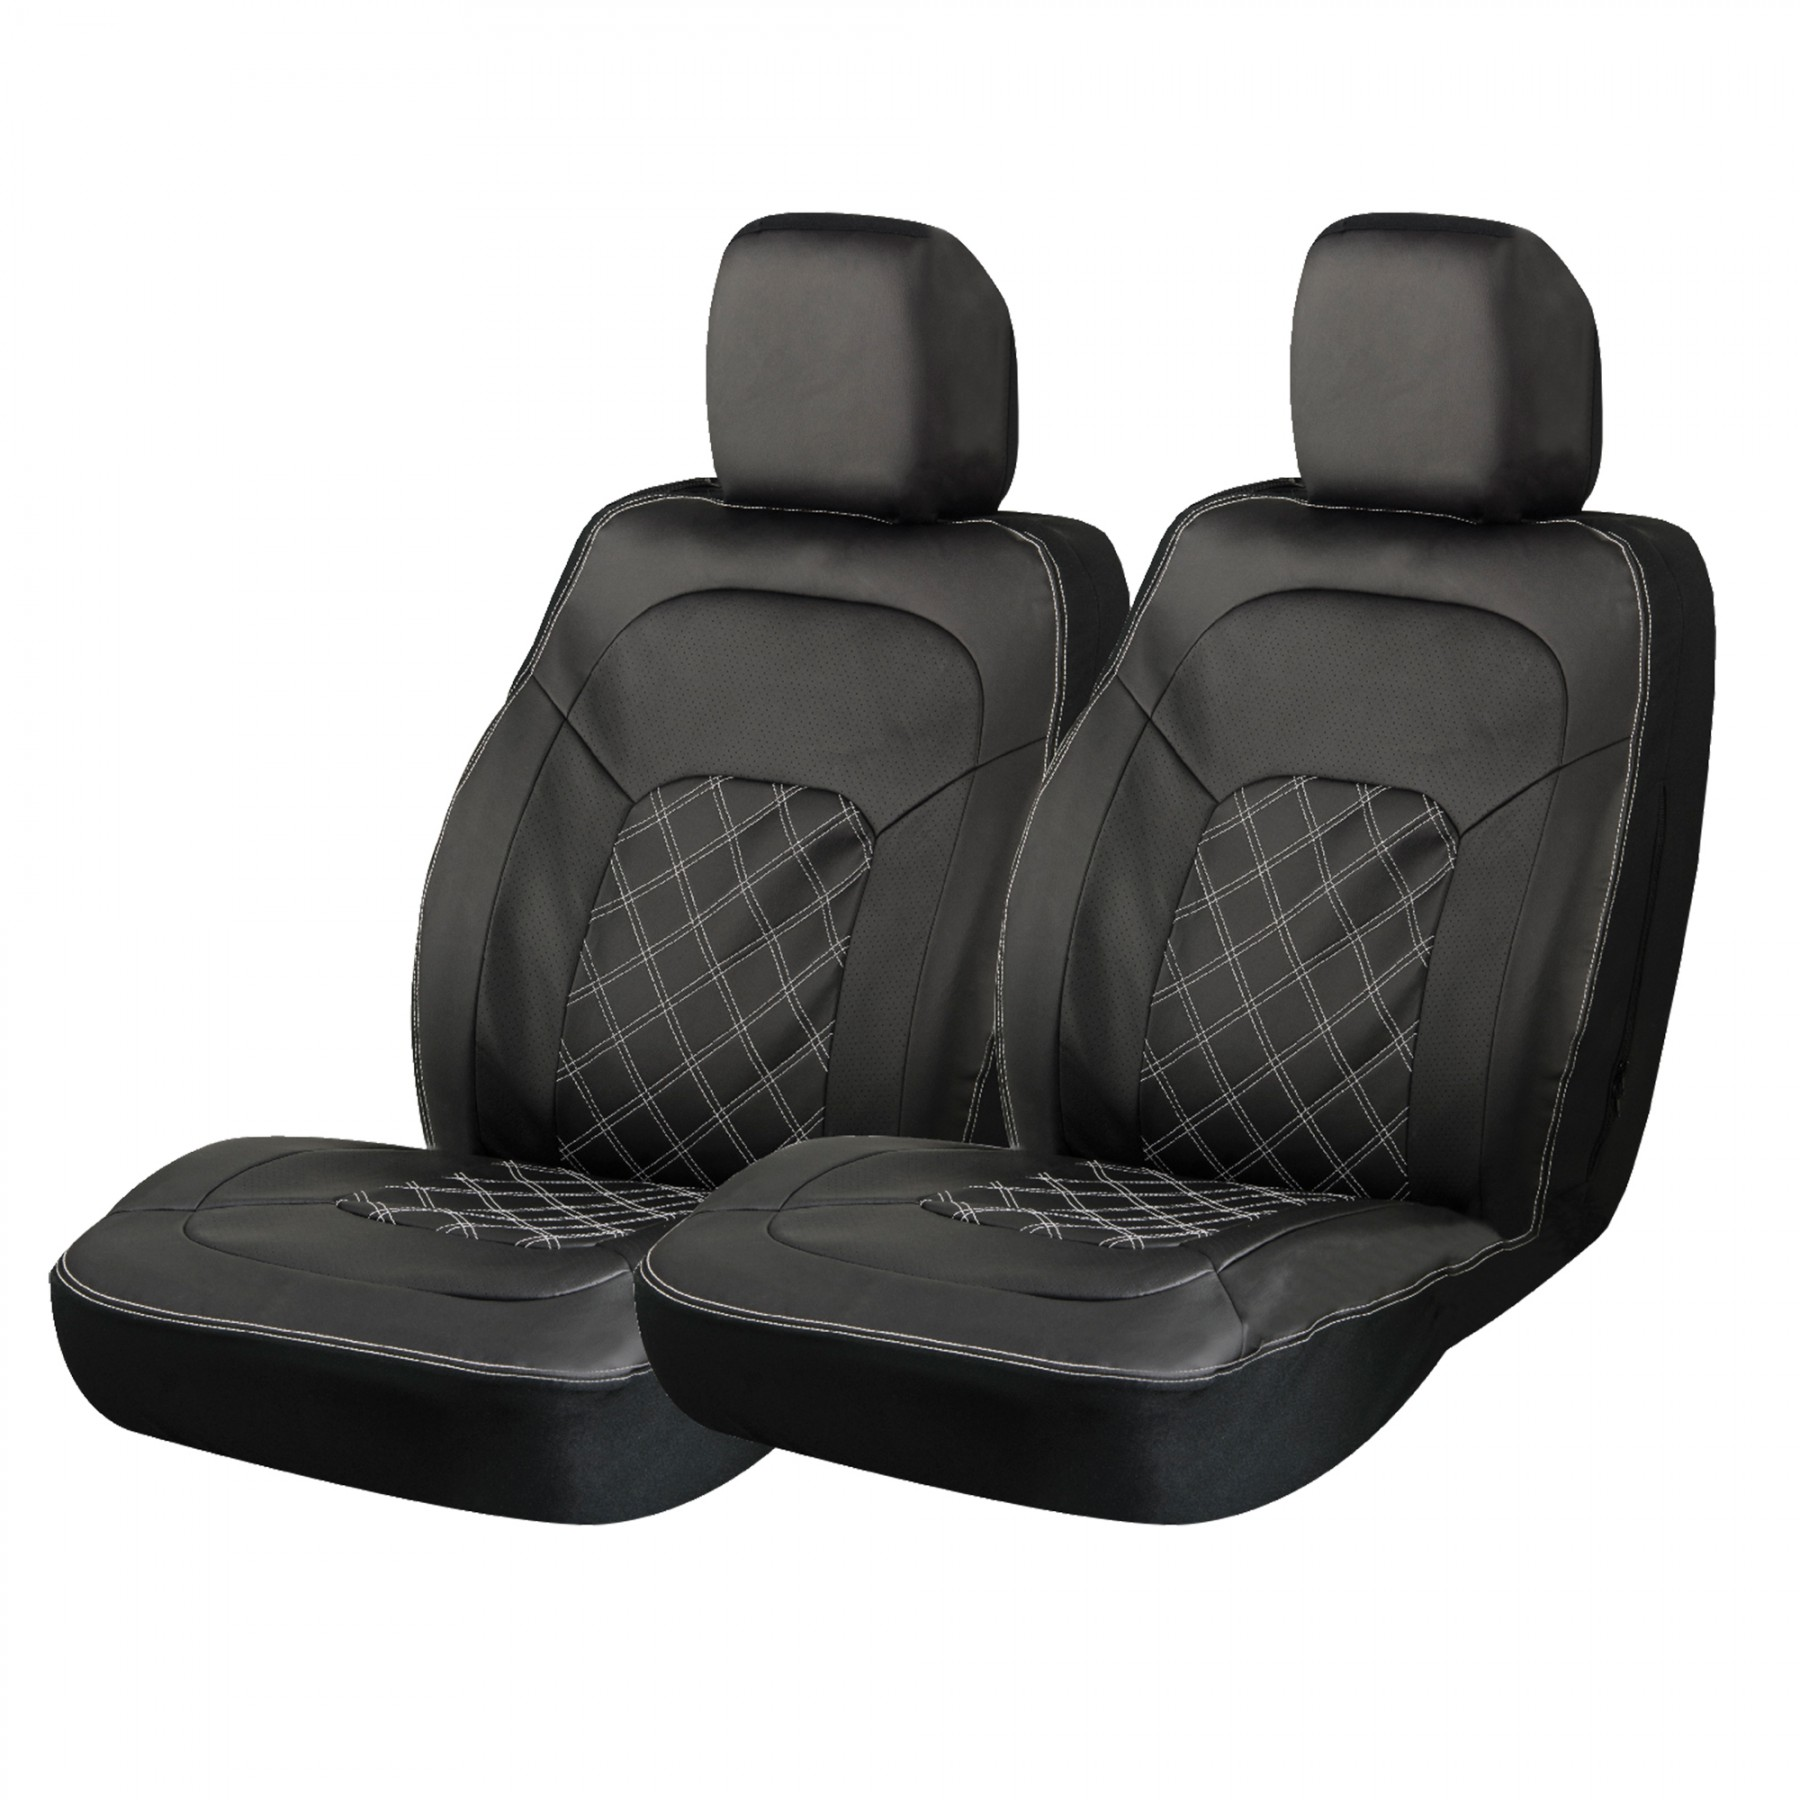 Masque Leather Car Seat Covers